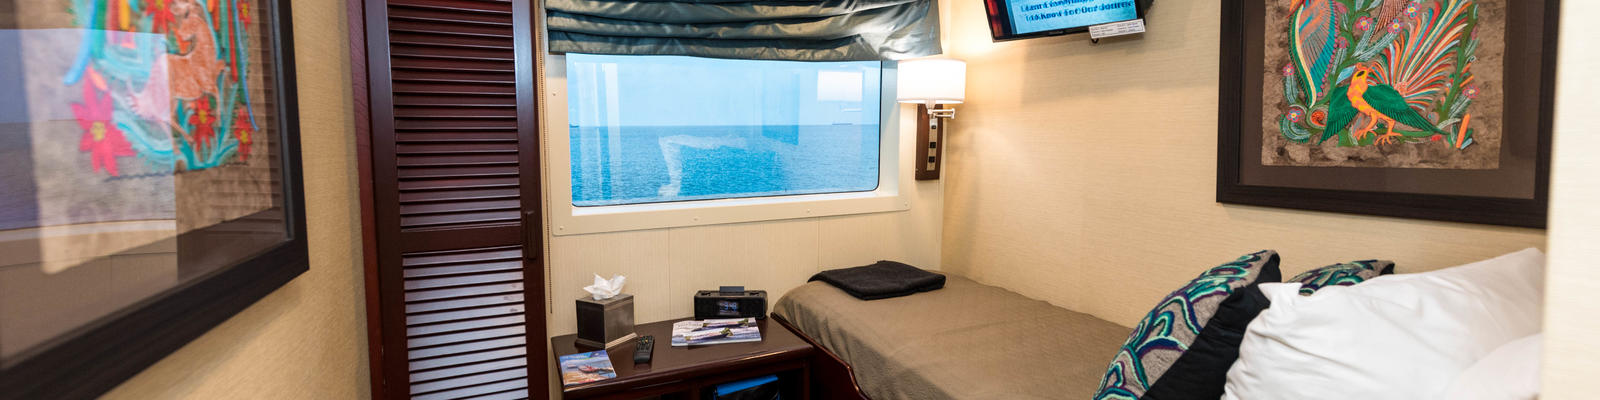 Safari Voyager Single Cabin (Photo: Cruise Critic)